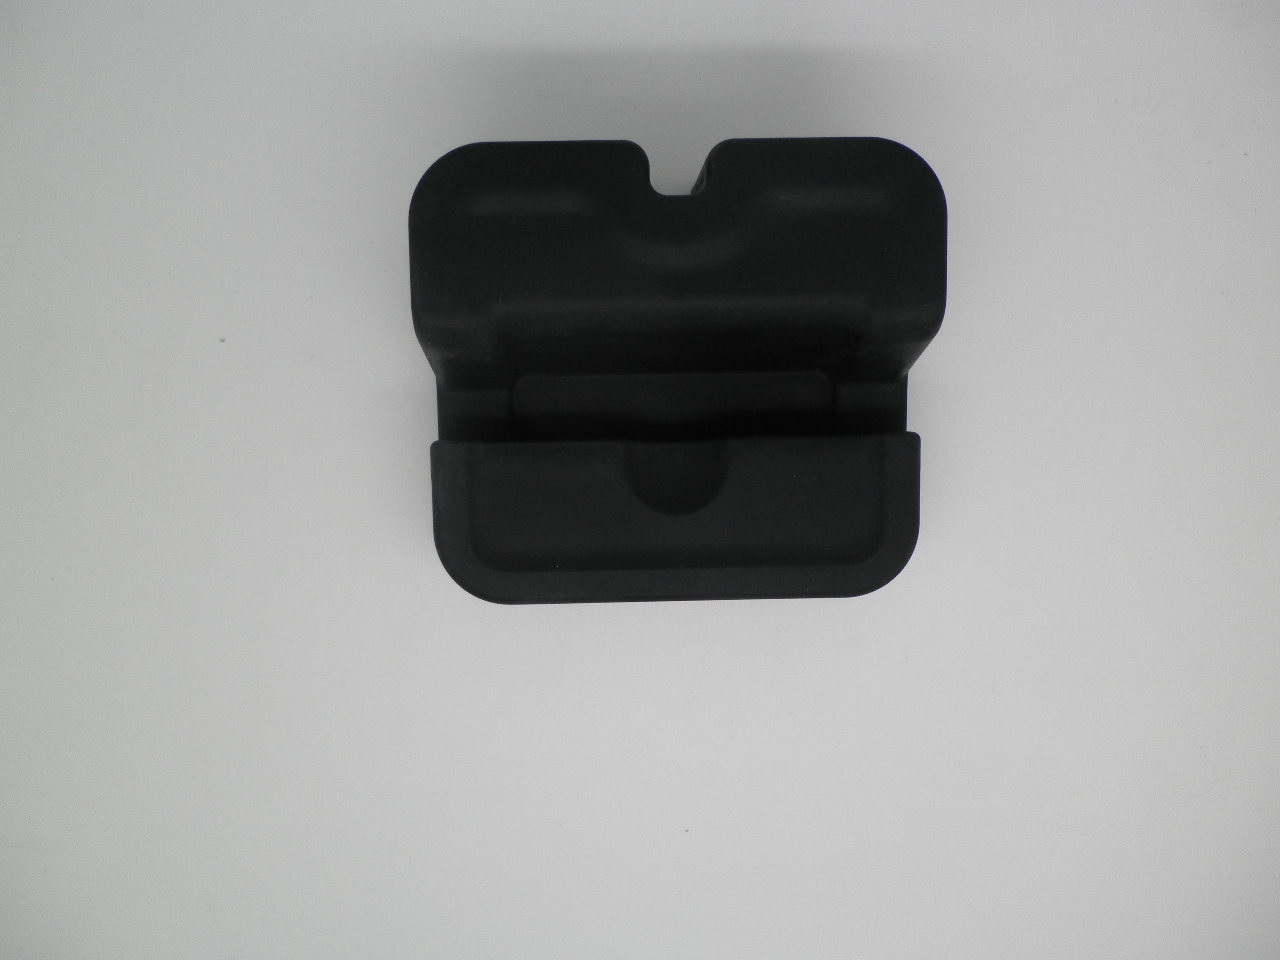 http://www.refinehksilicone.cn/data/images/product/20180417110747_828.JPG